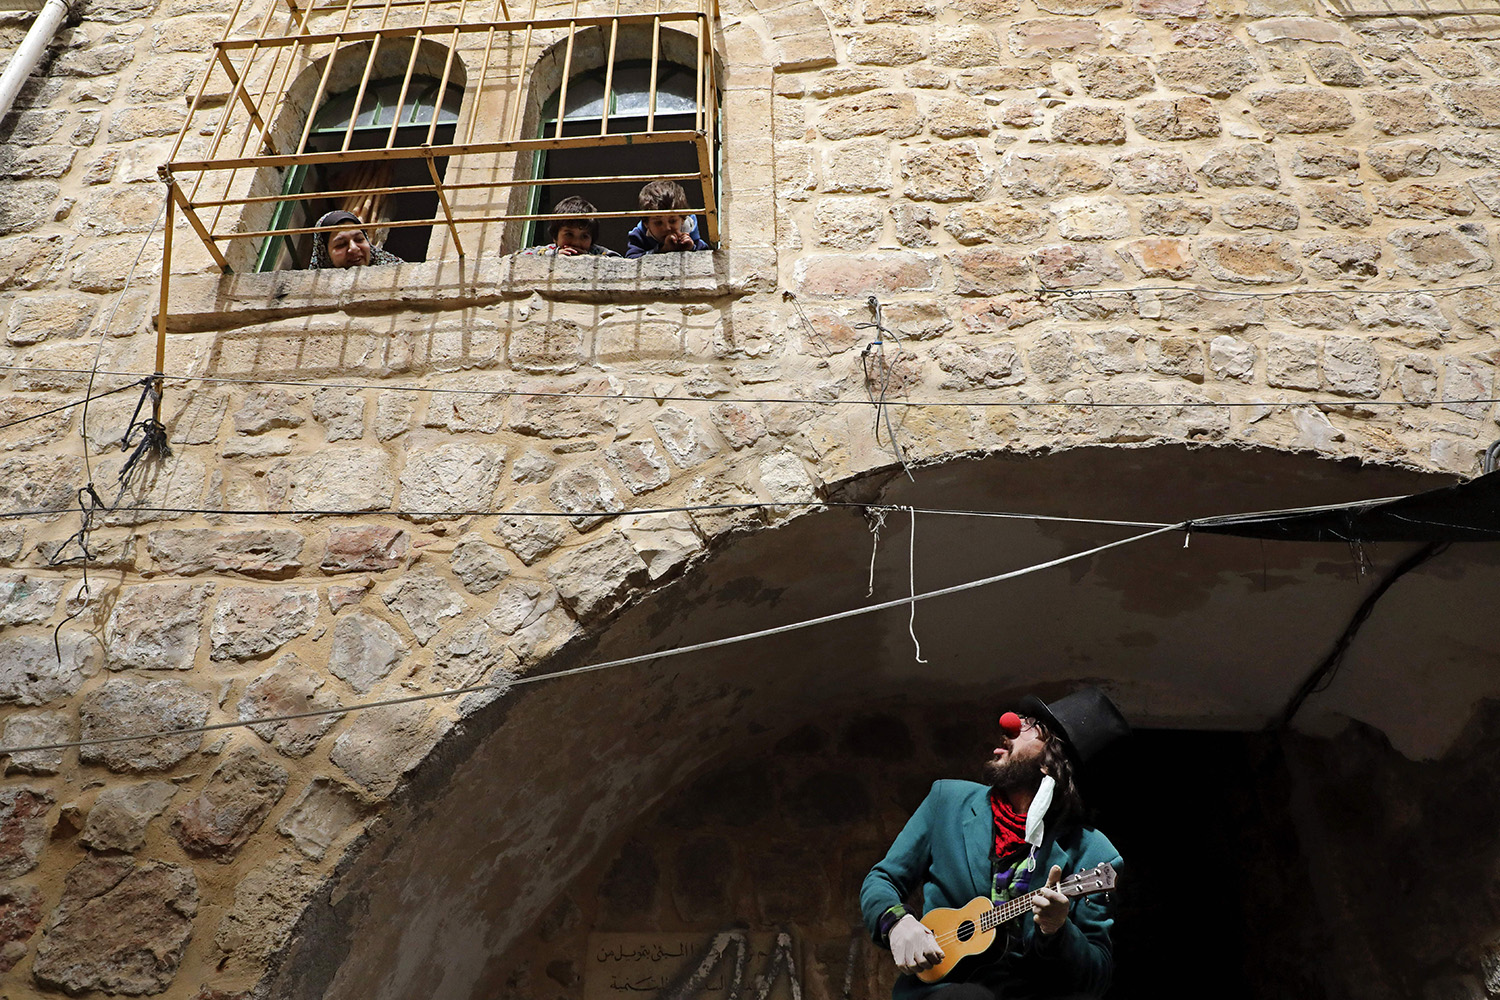 Artist Ameer Abu Ghalioon plays music dressed as a clown under the windows of Palestinian families on lockdown in the divided West Bank town of Hebron on March 31. HAZEM BADER/AFP via Getty Images